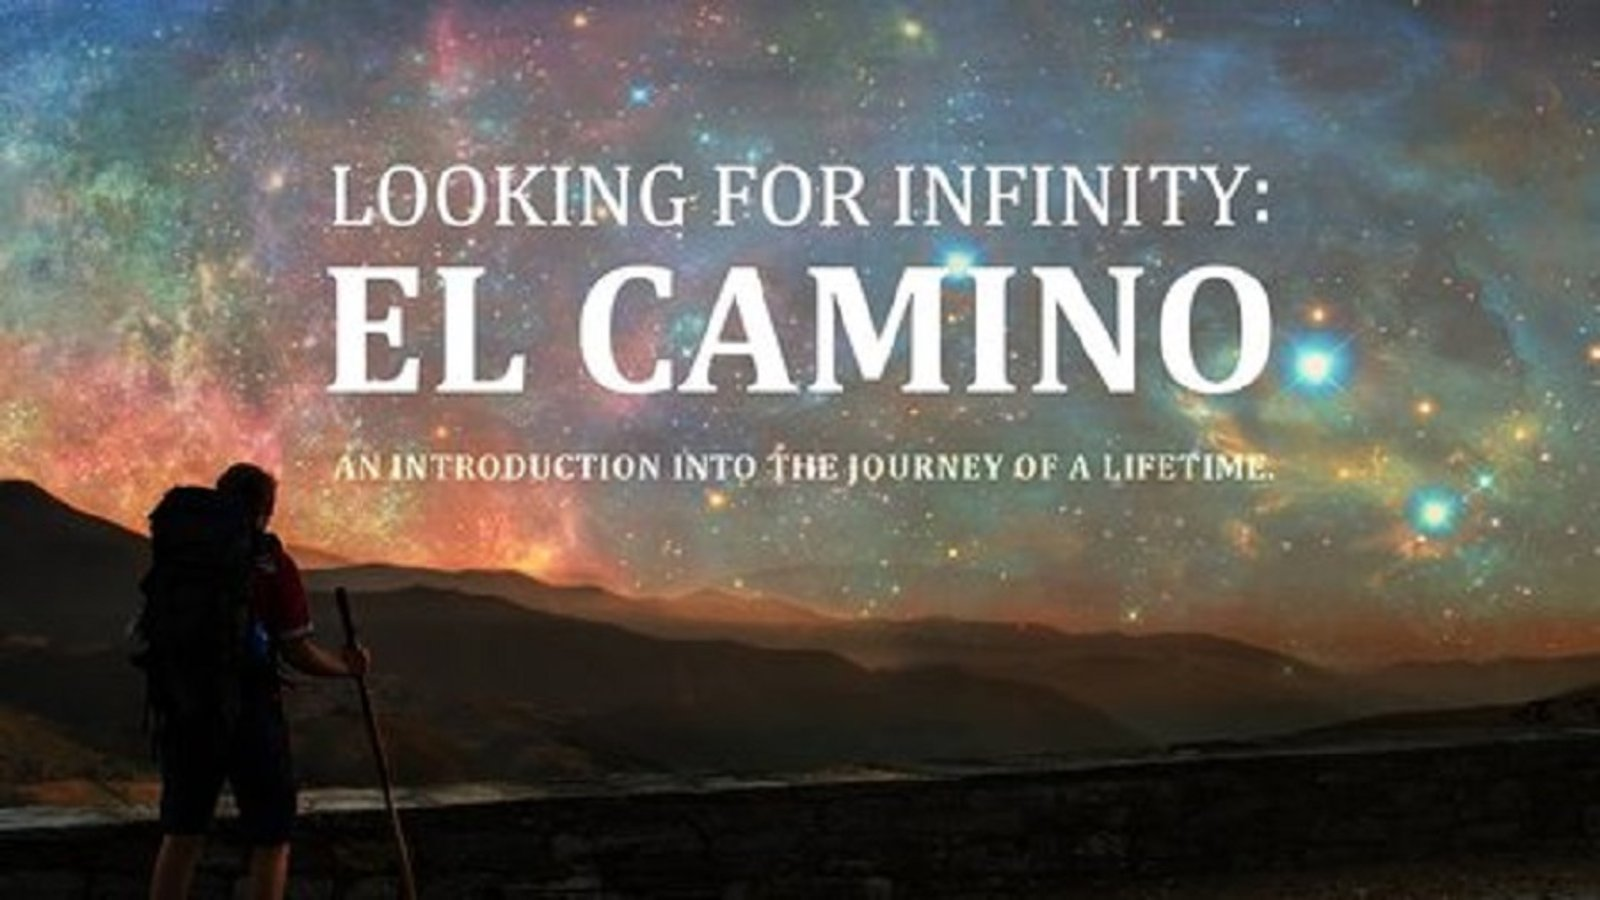 Looking for Infinity: El Camino - An Inspirational Christian Pilgrimage